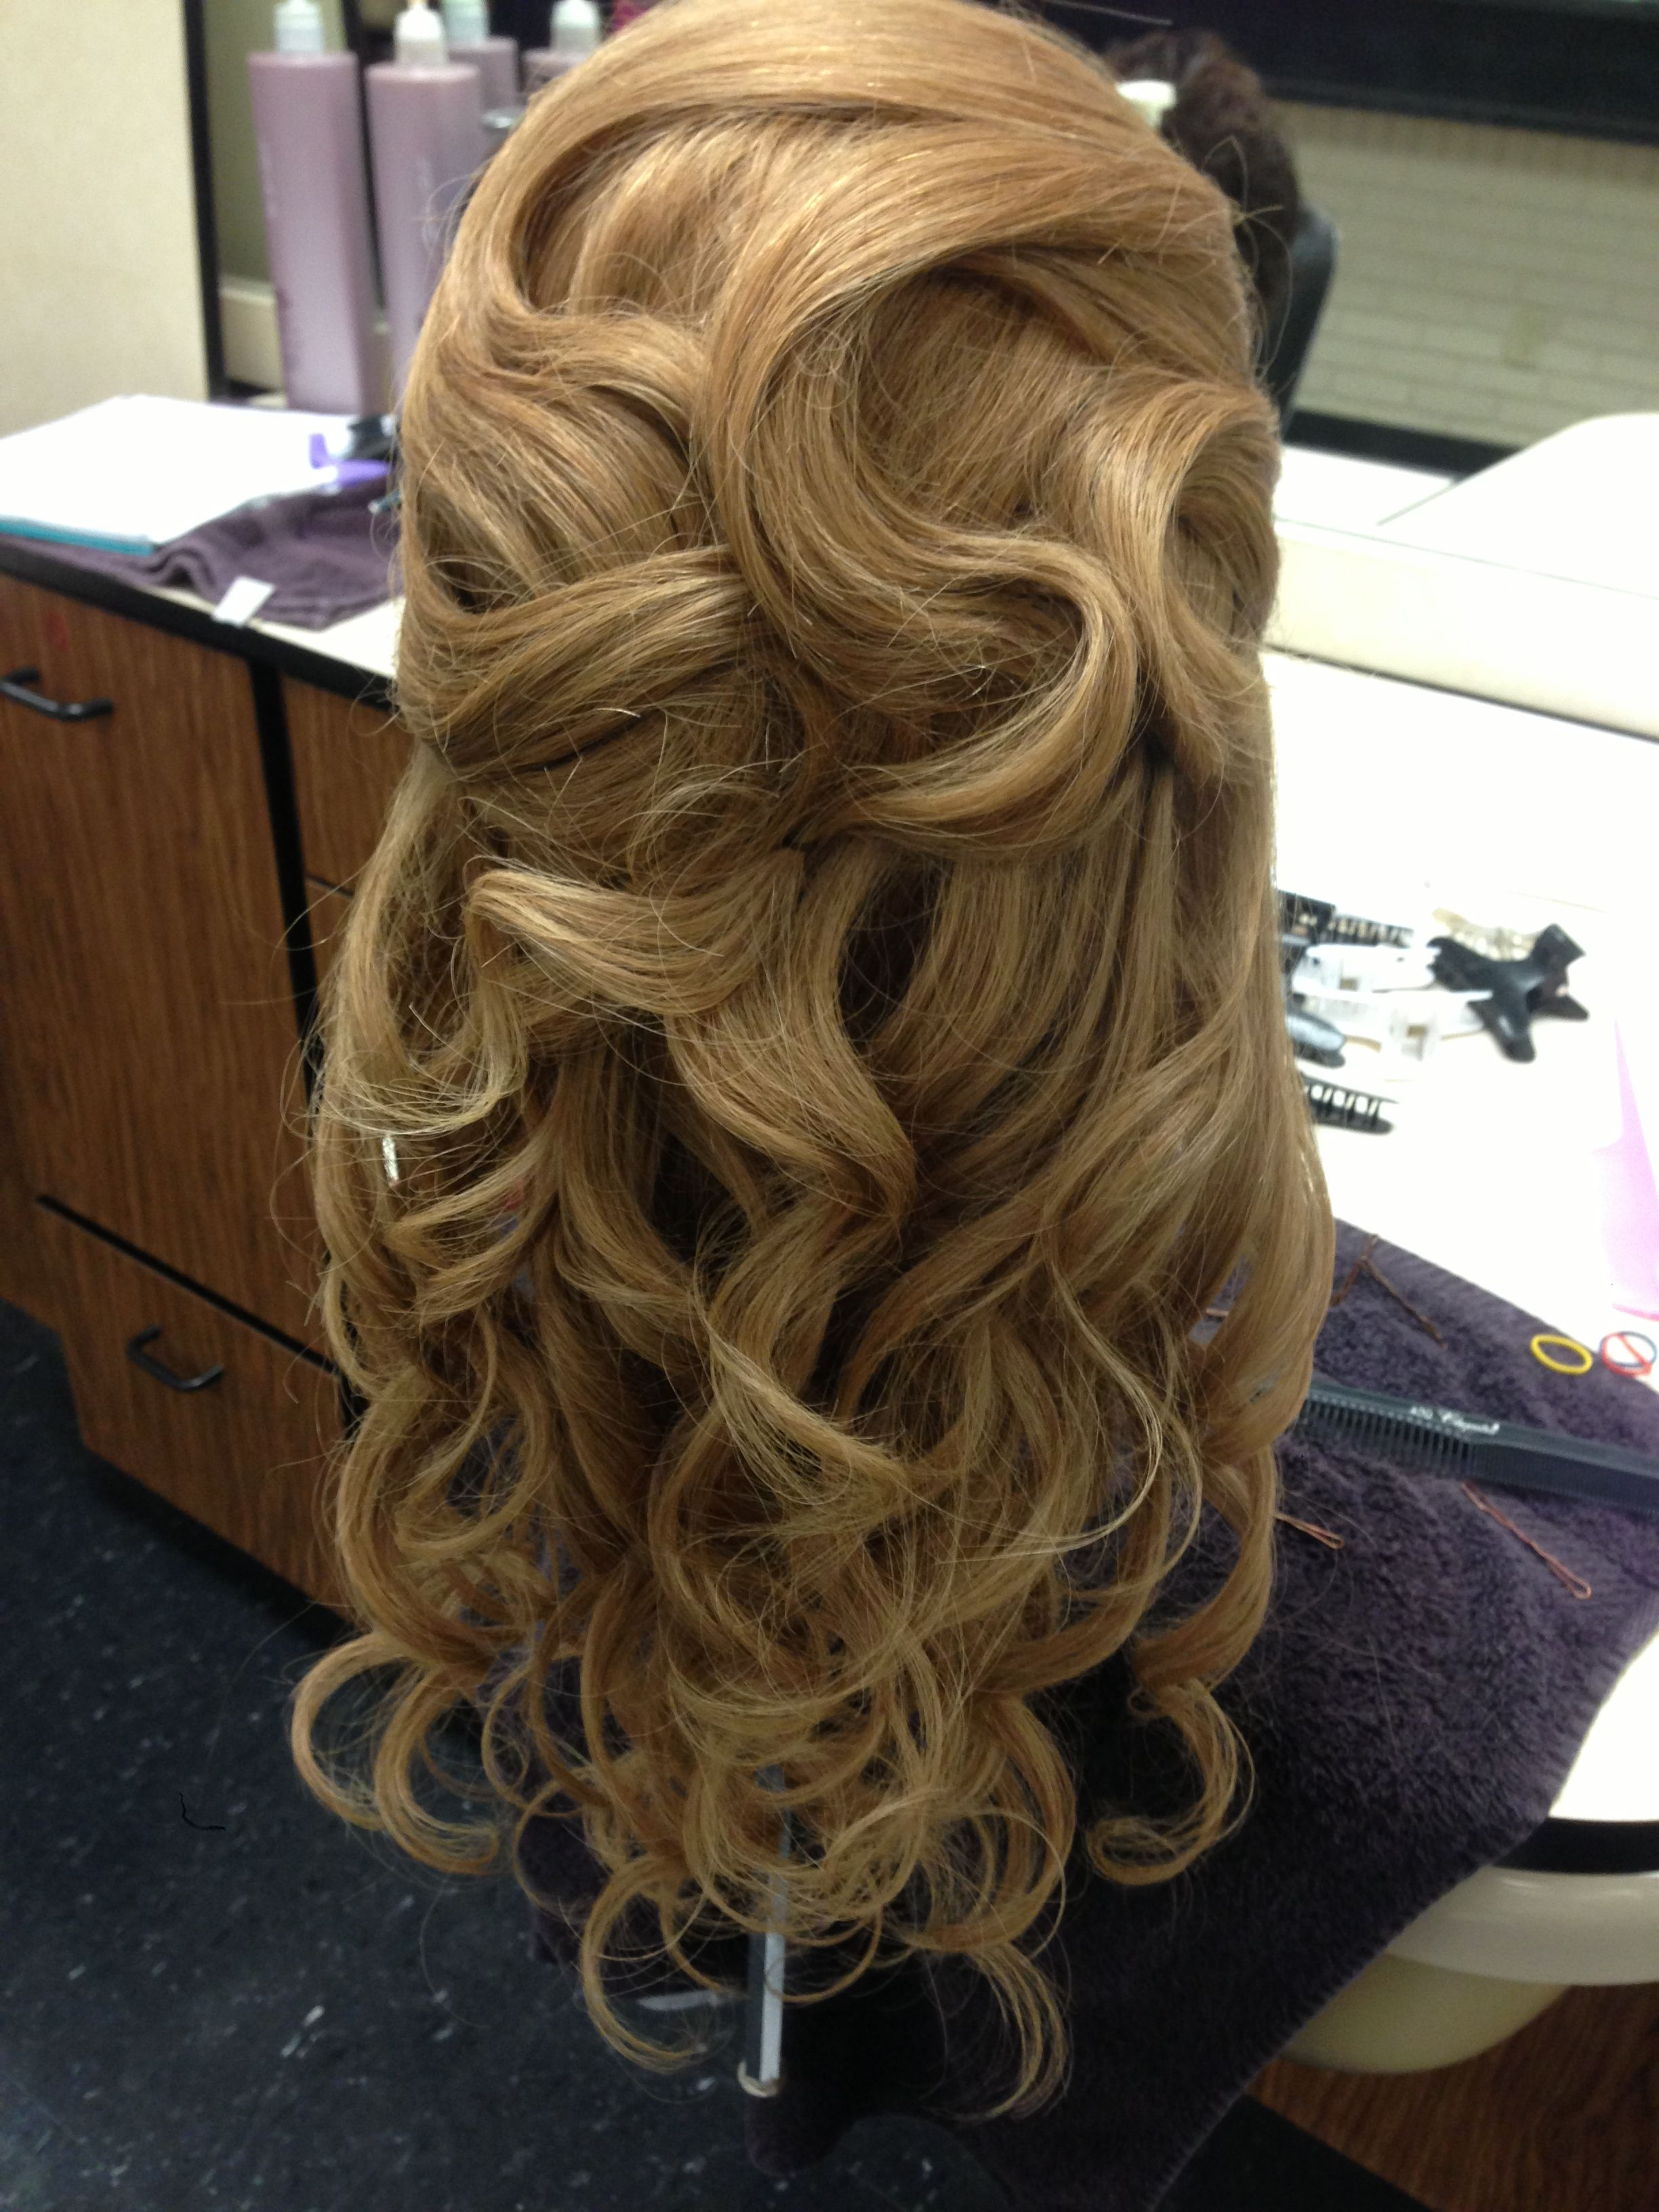 A pretty way to wear your hair down and curly down